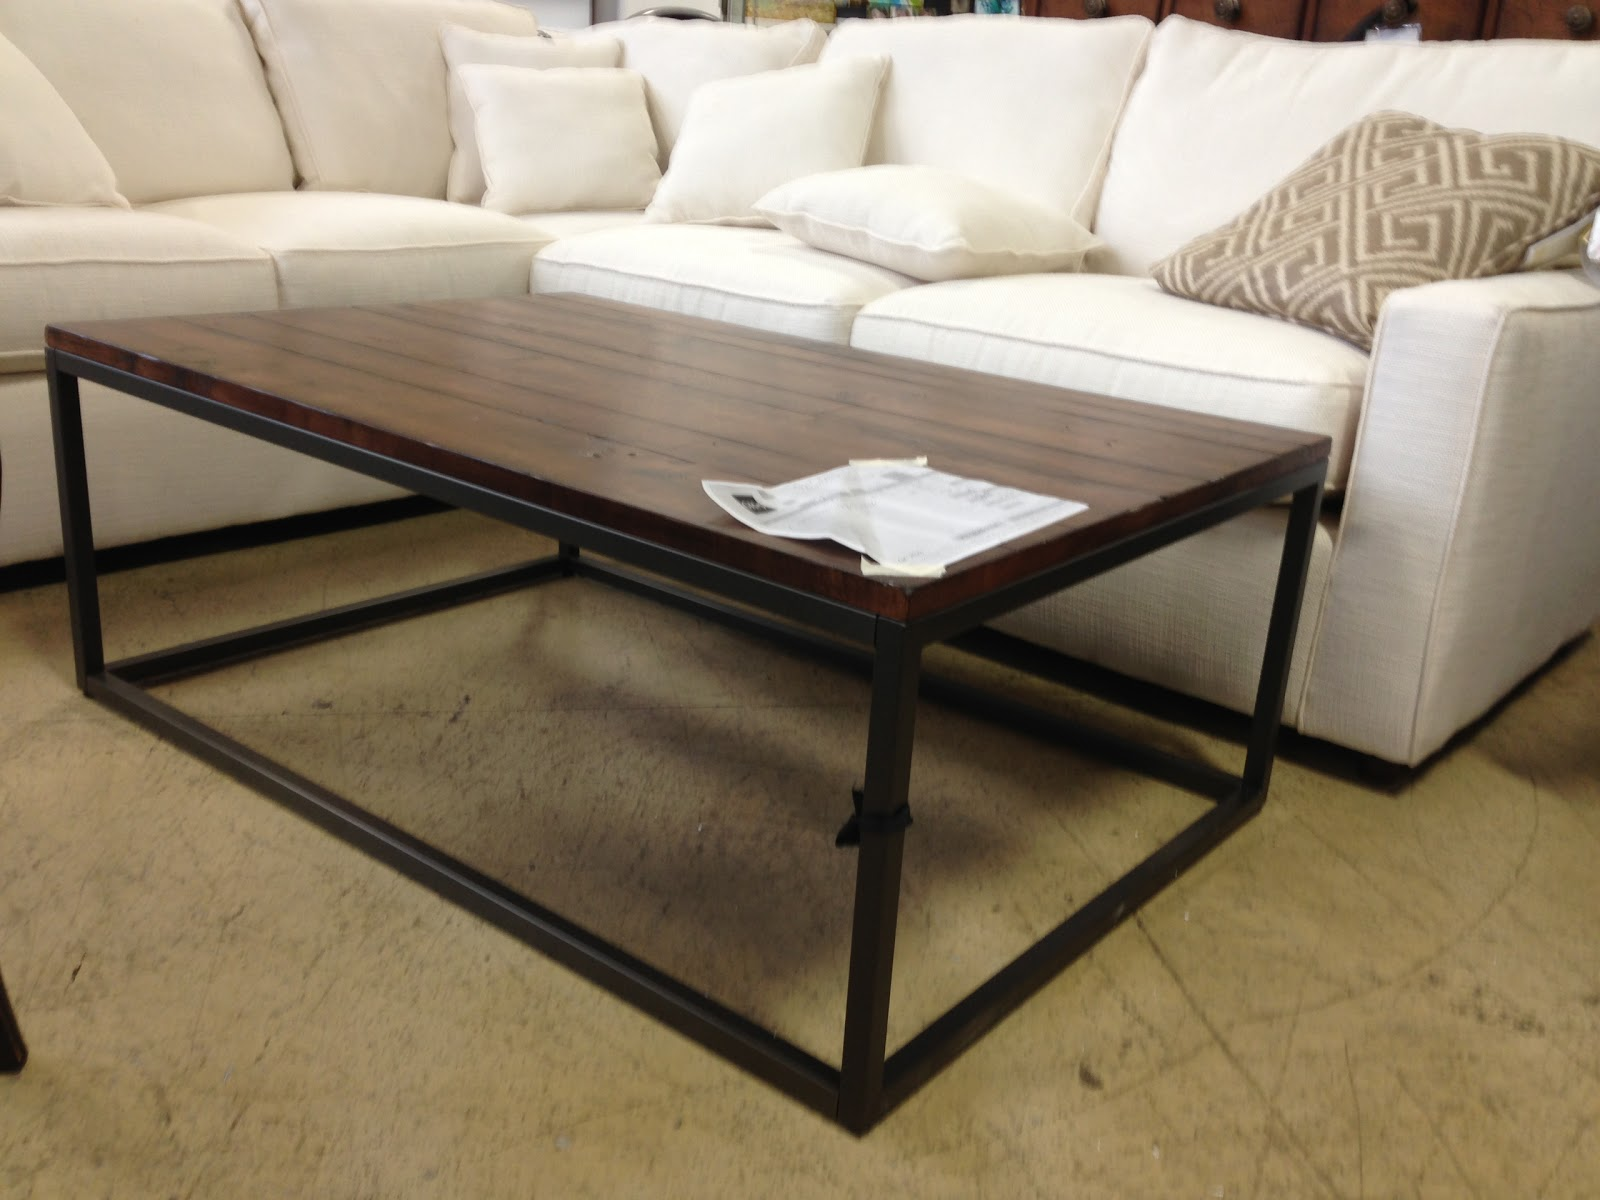 Interior groupie living room chair and coffee table - Brickmakers coffee table living room ...